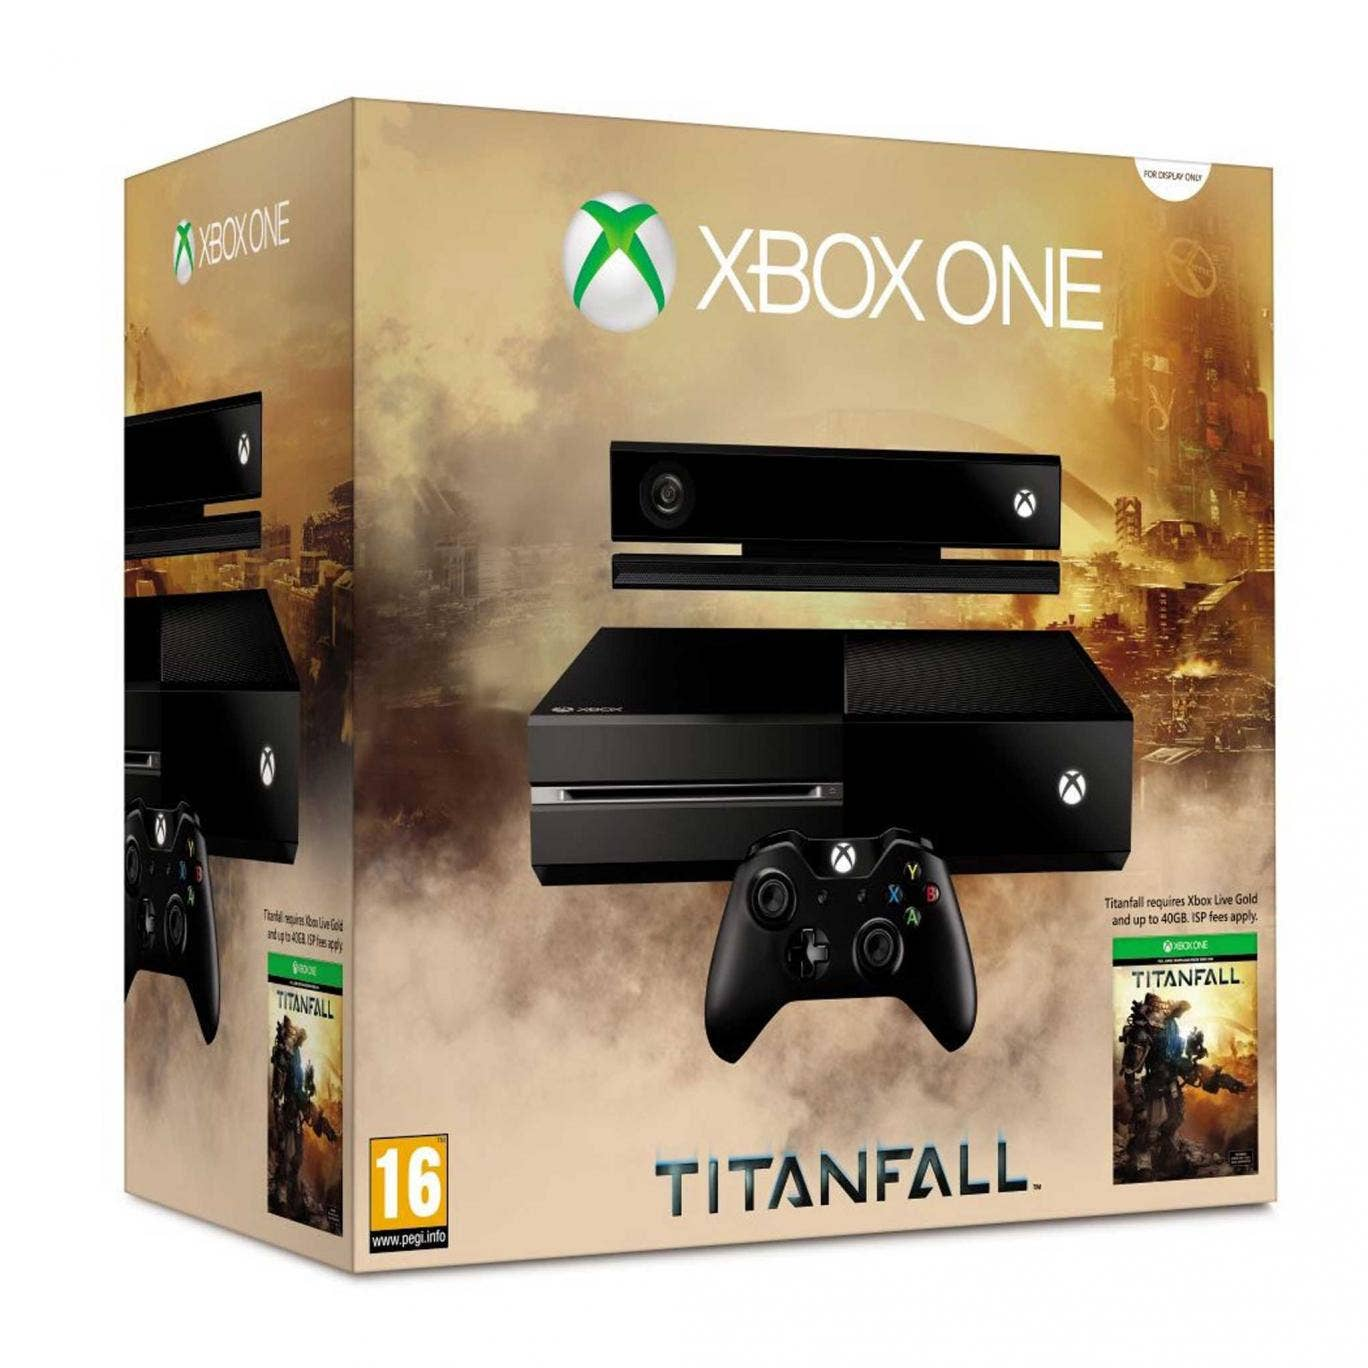 Robot reboot: the Titanfall Bundle is on sale at Asda for £349